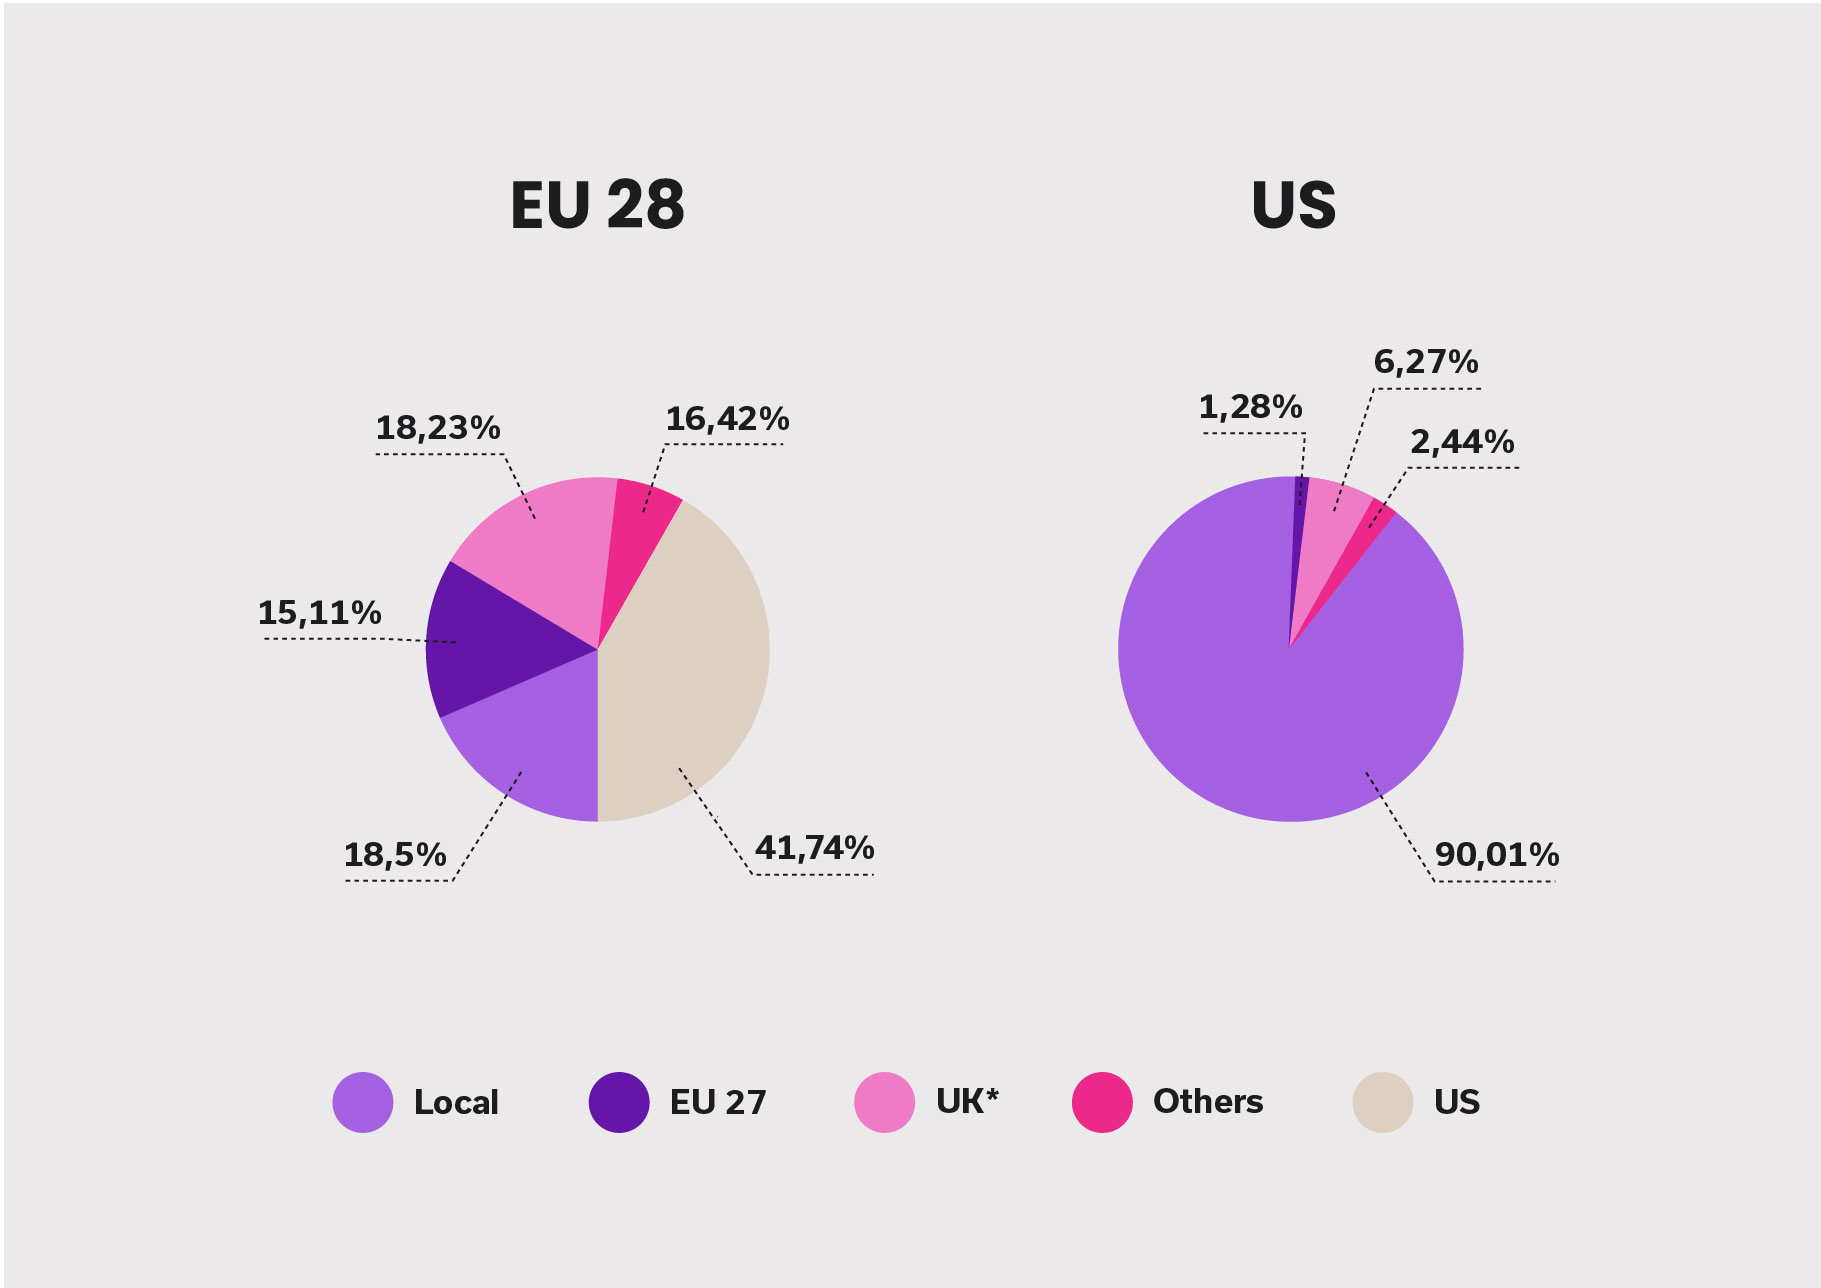 Infography of average music consumption by country of origin on major music streaming platforms in the EU and the US